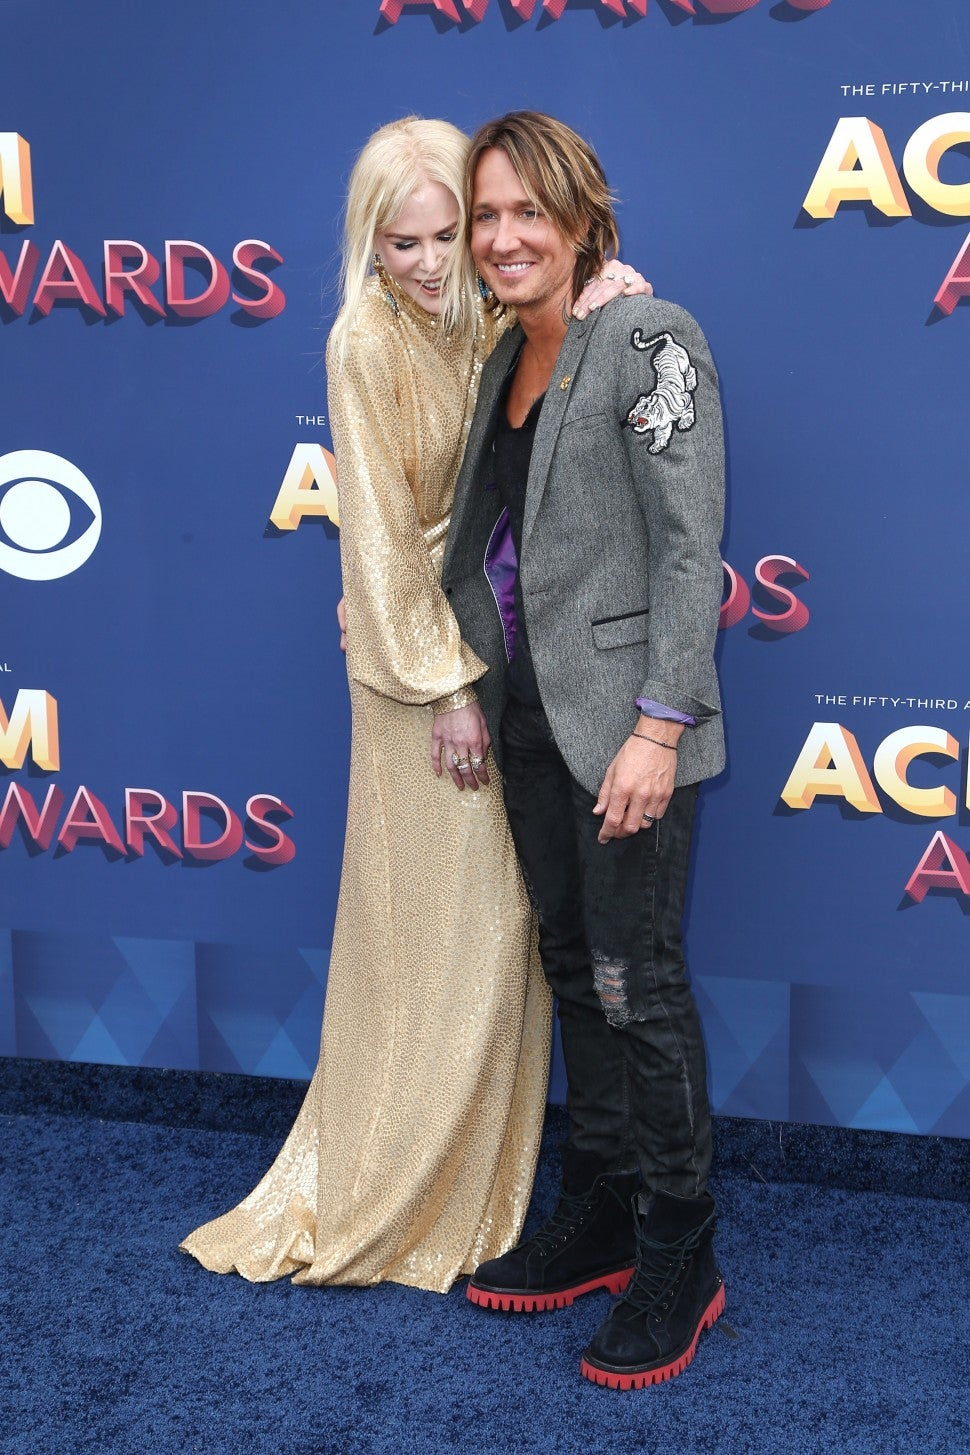 Keith urban and Nicole Kidman ACM Awards